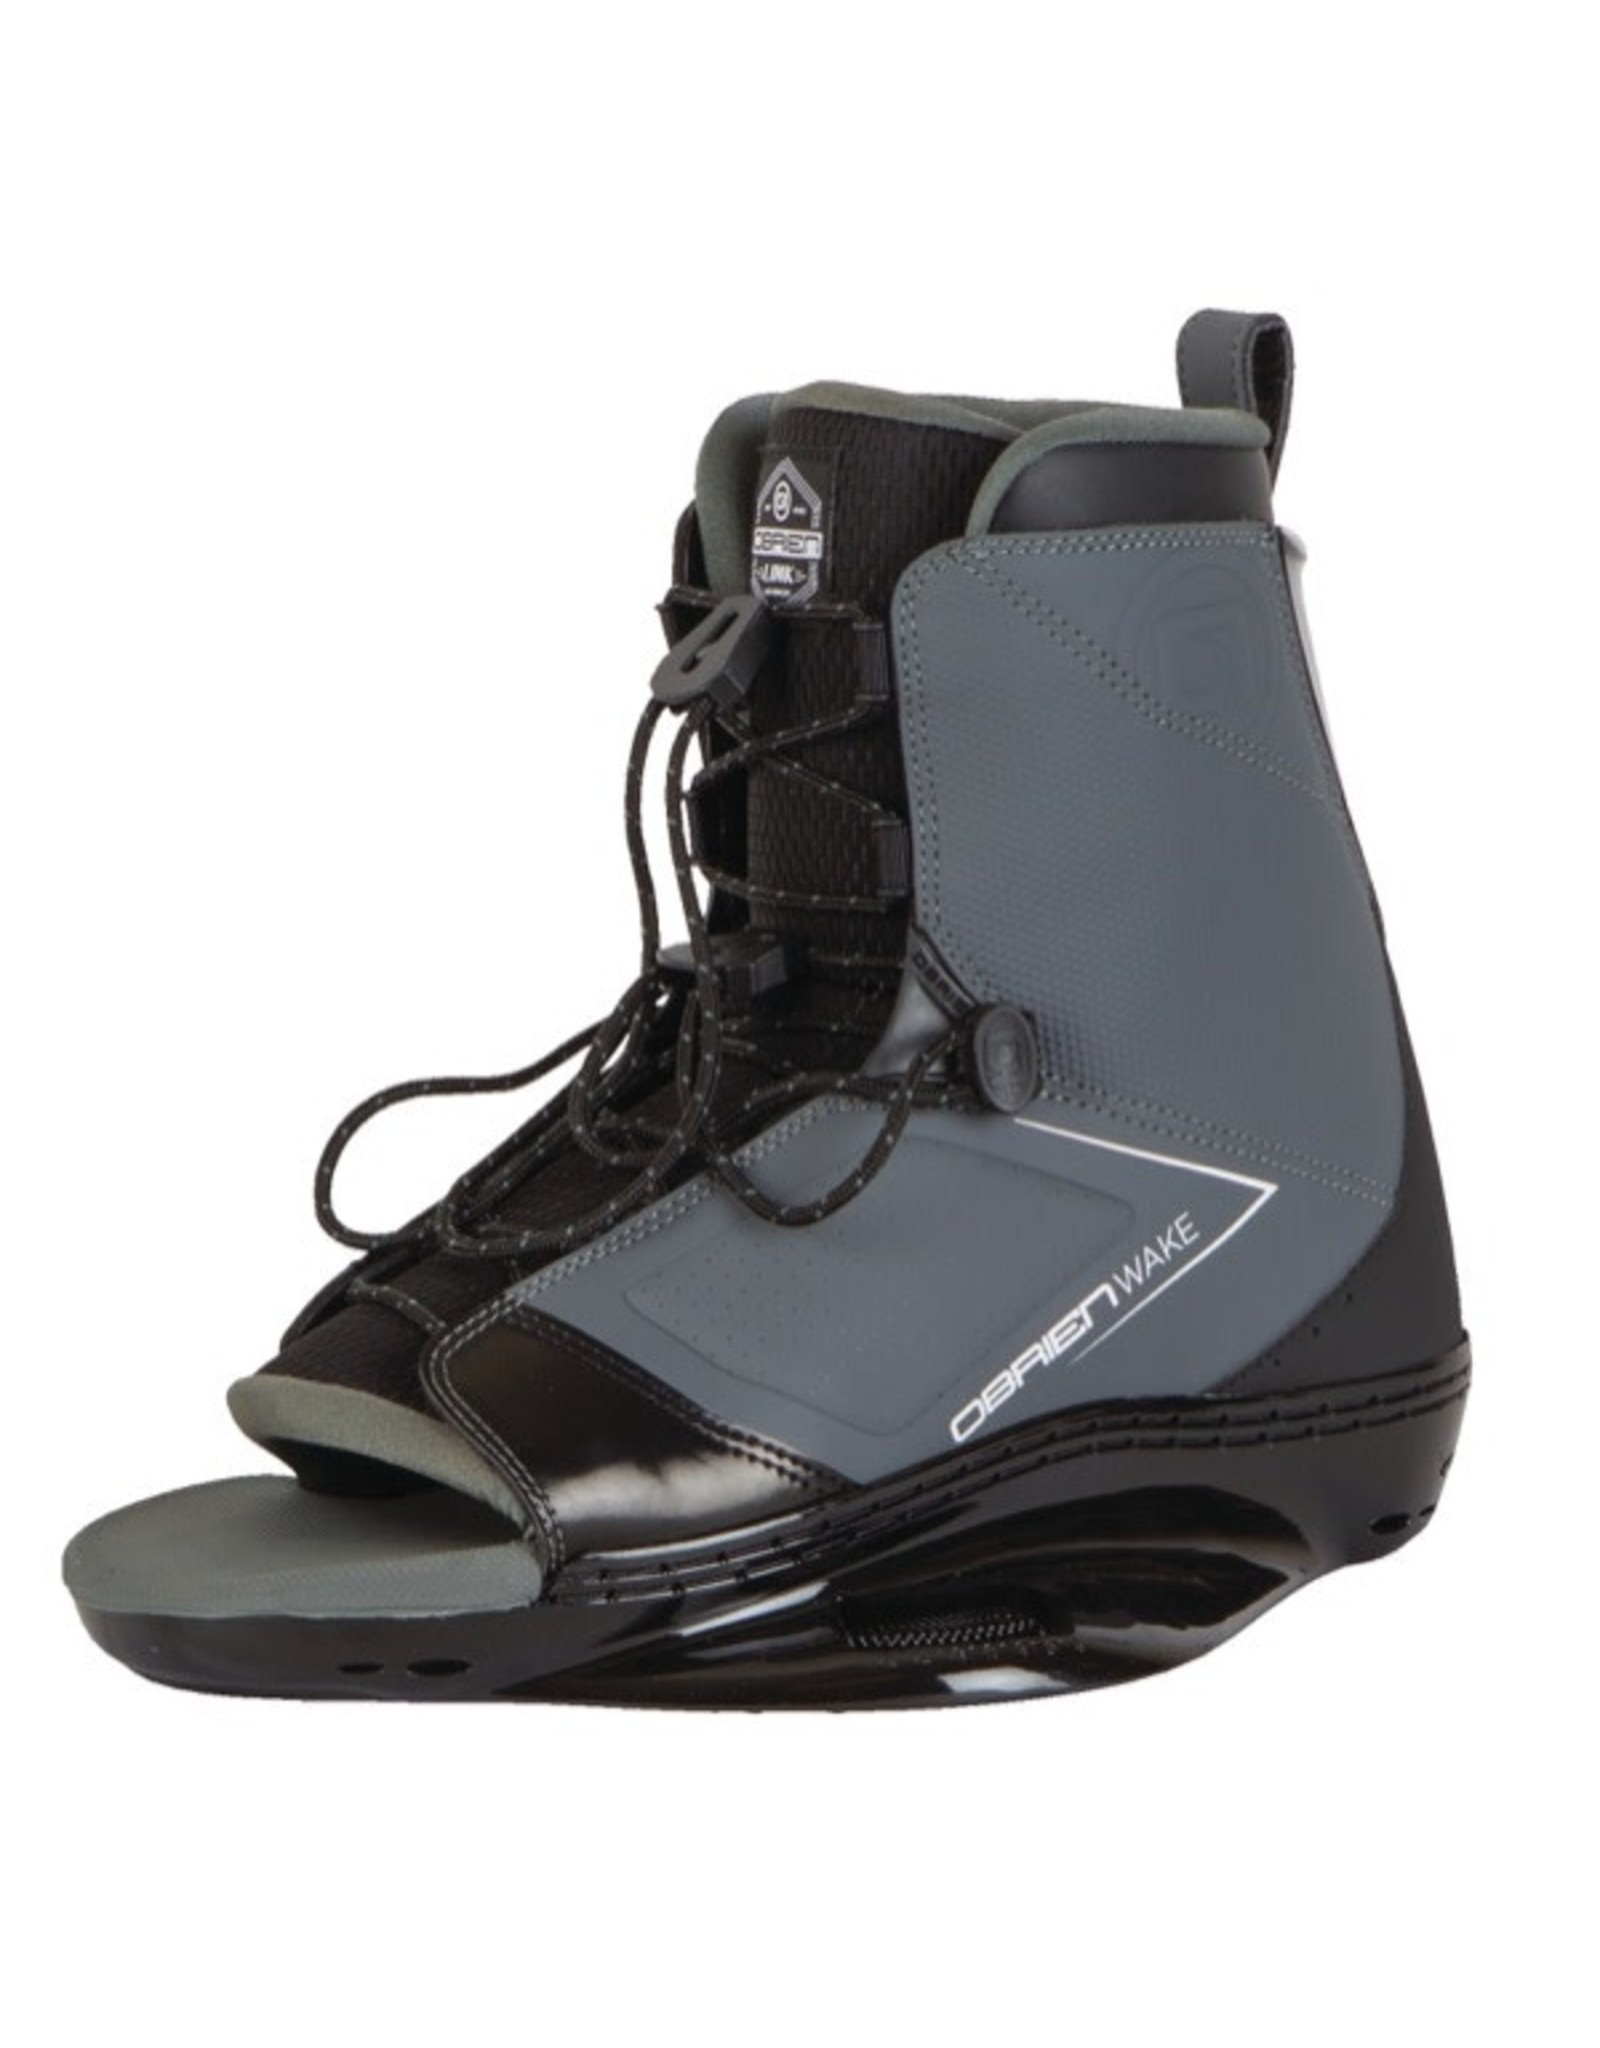 O'Brien Link Wakeboard Boot